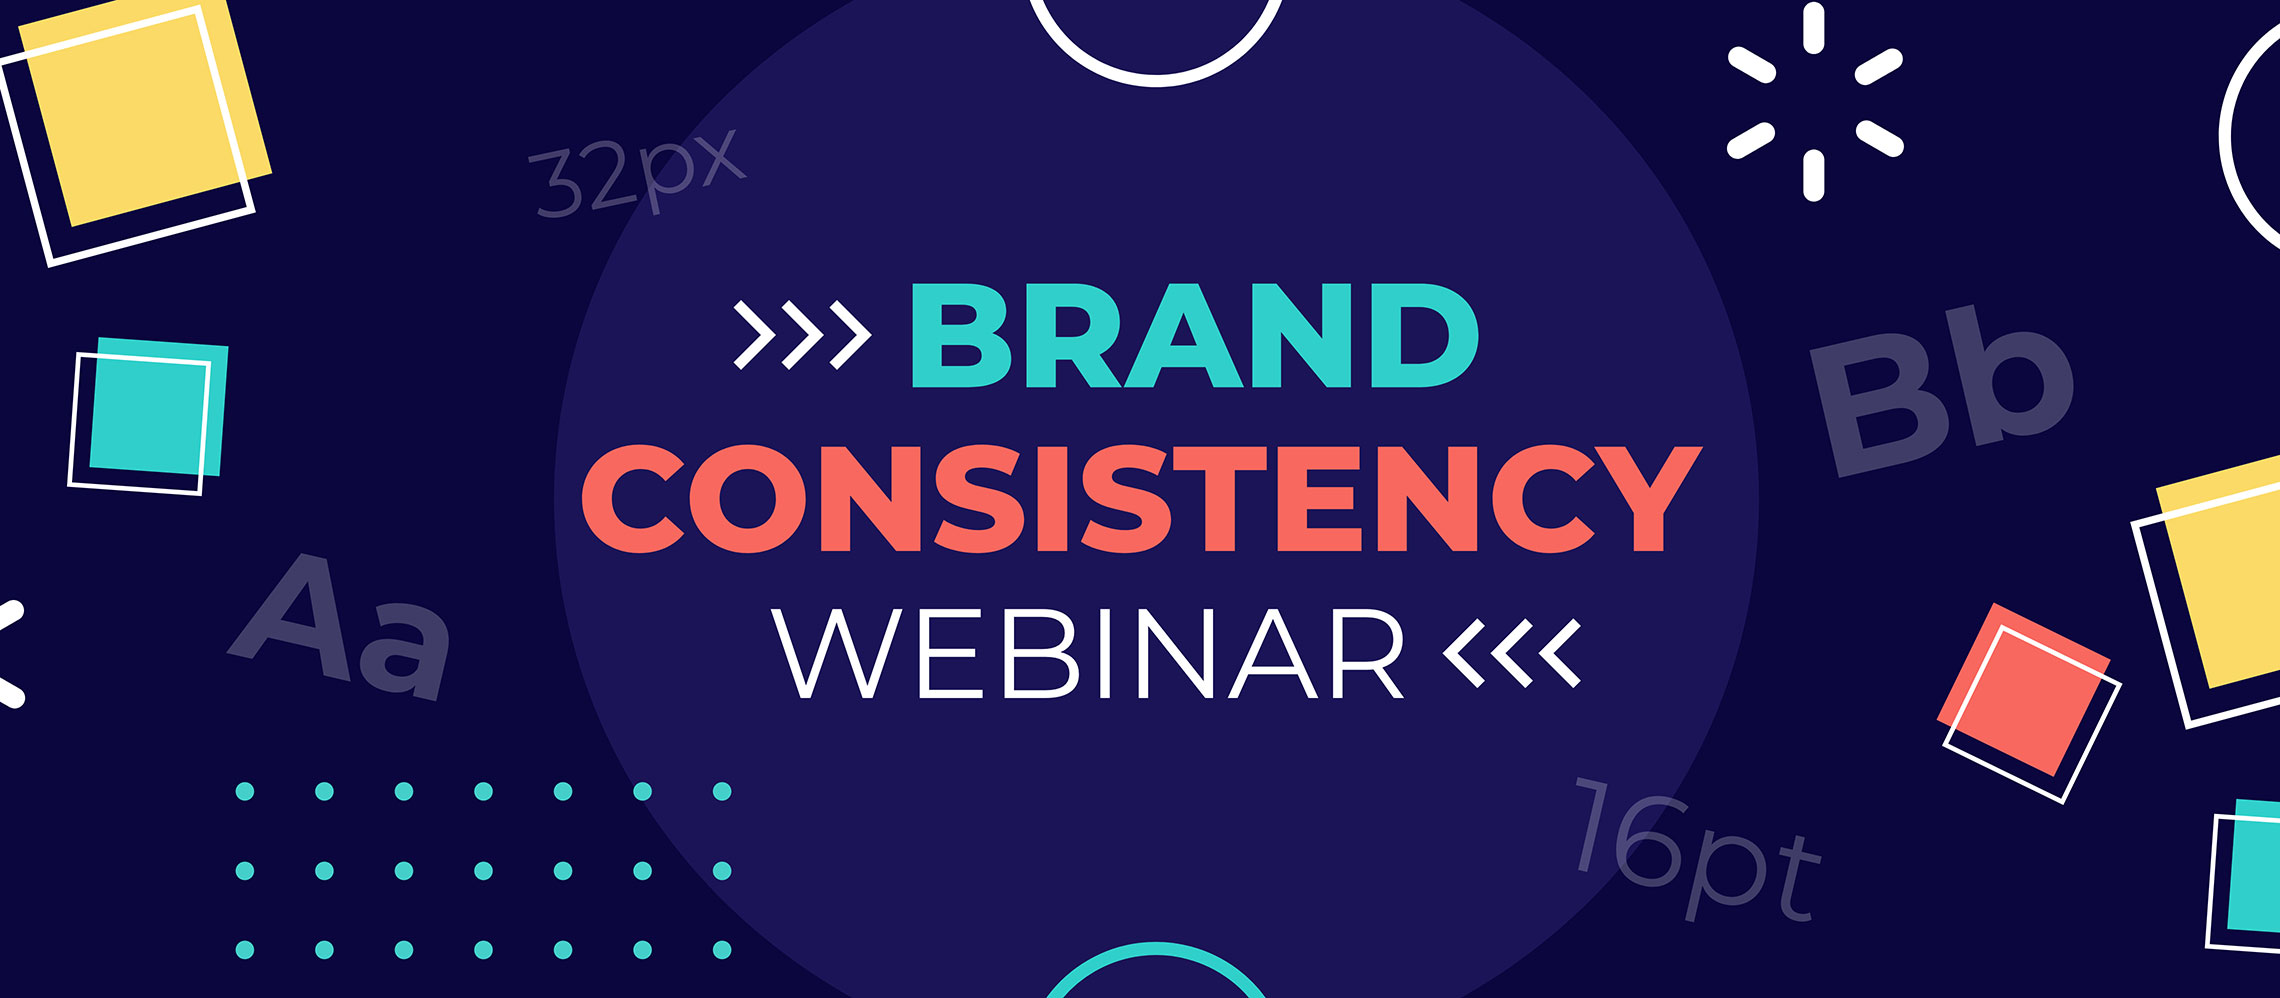 brand consistency webinar blog header